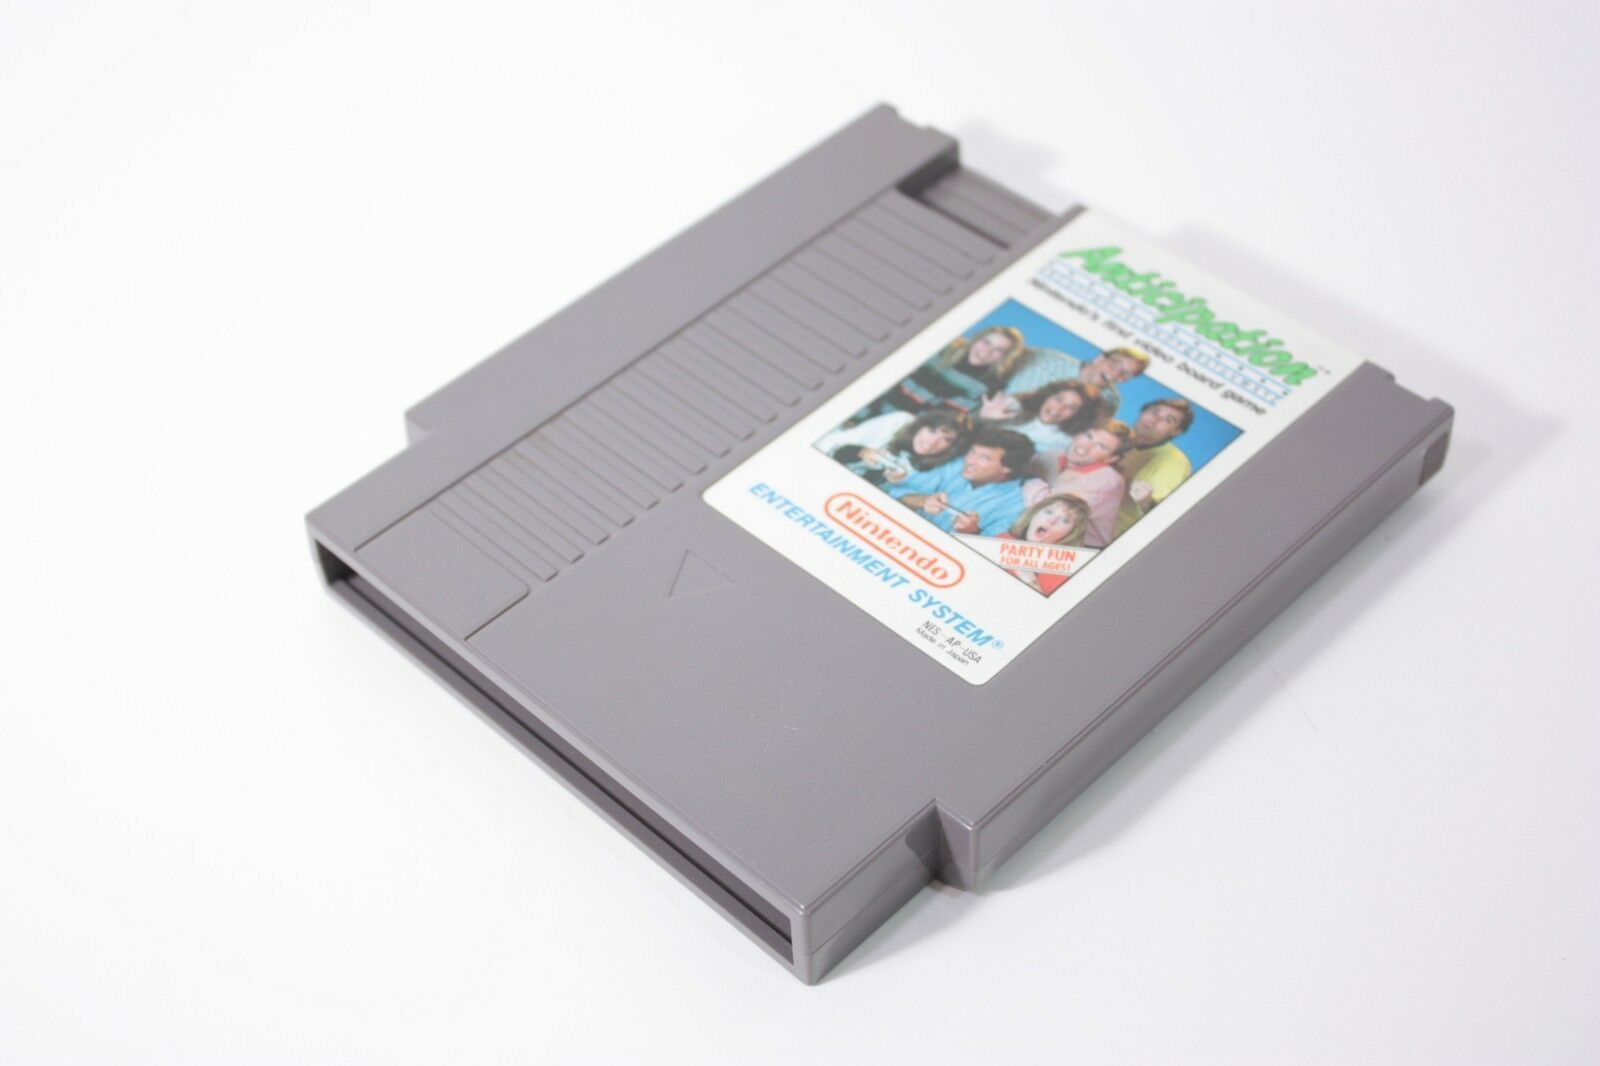 Nintendo NES Anticipation Video Board Game In Box With Manual